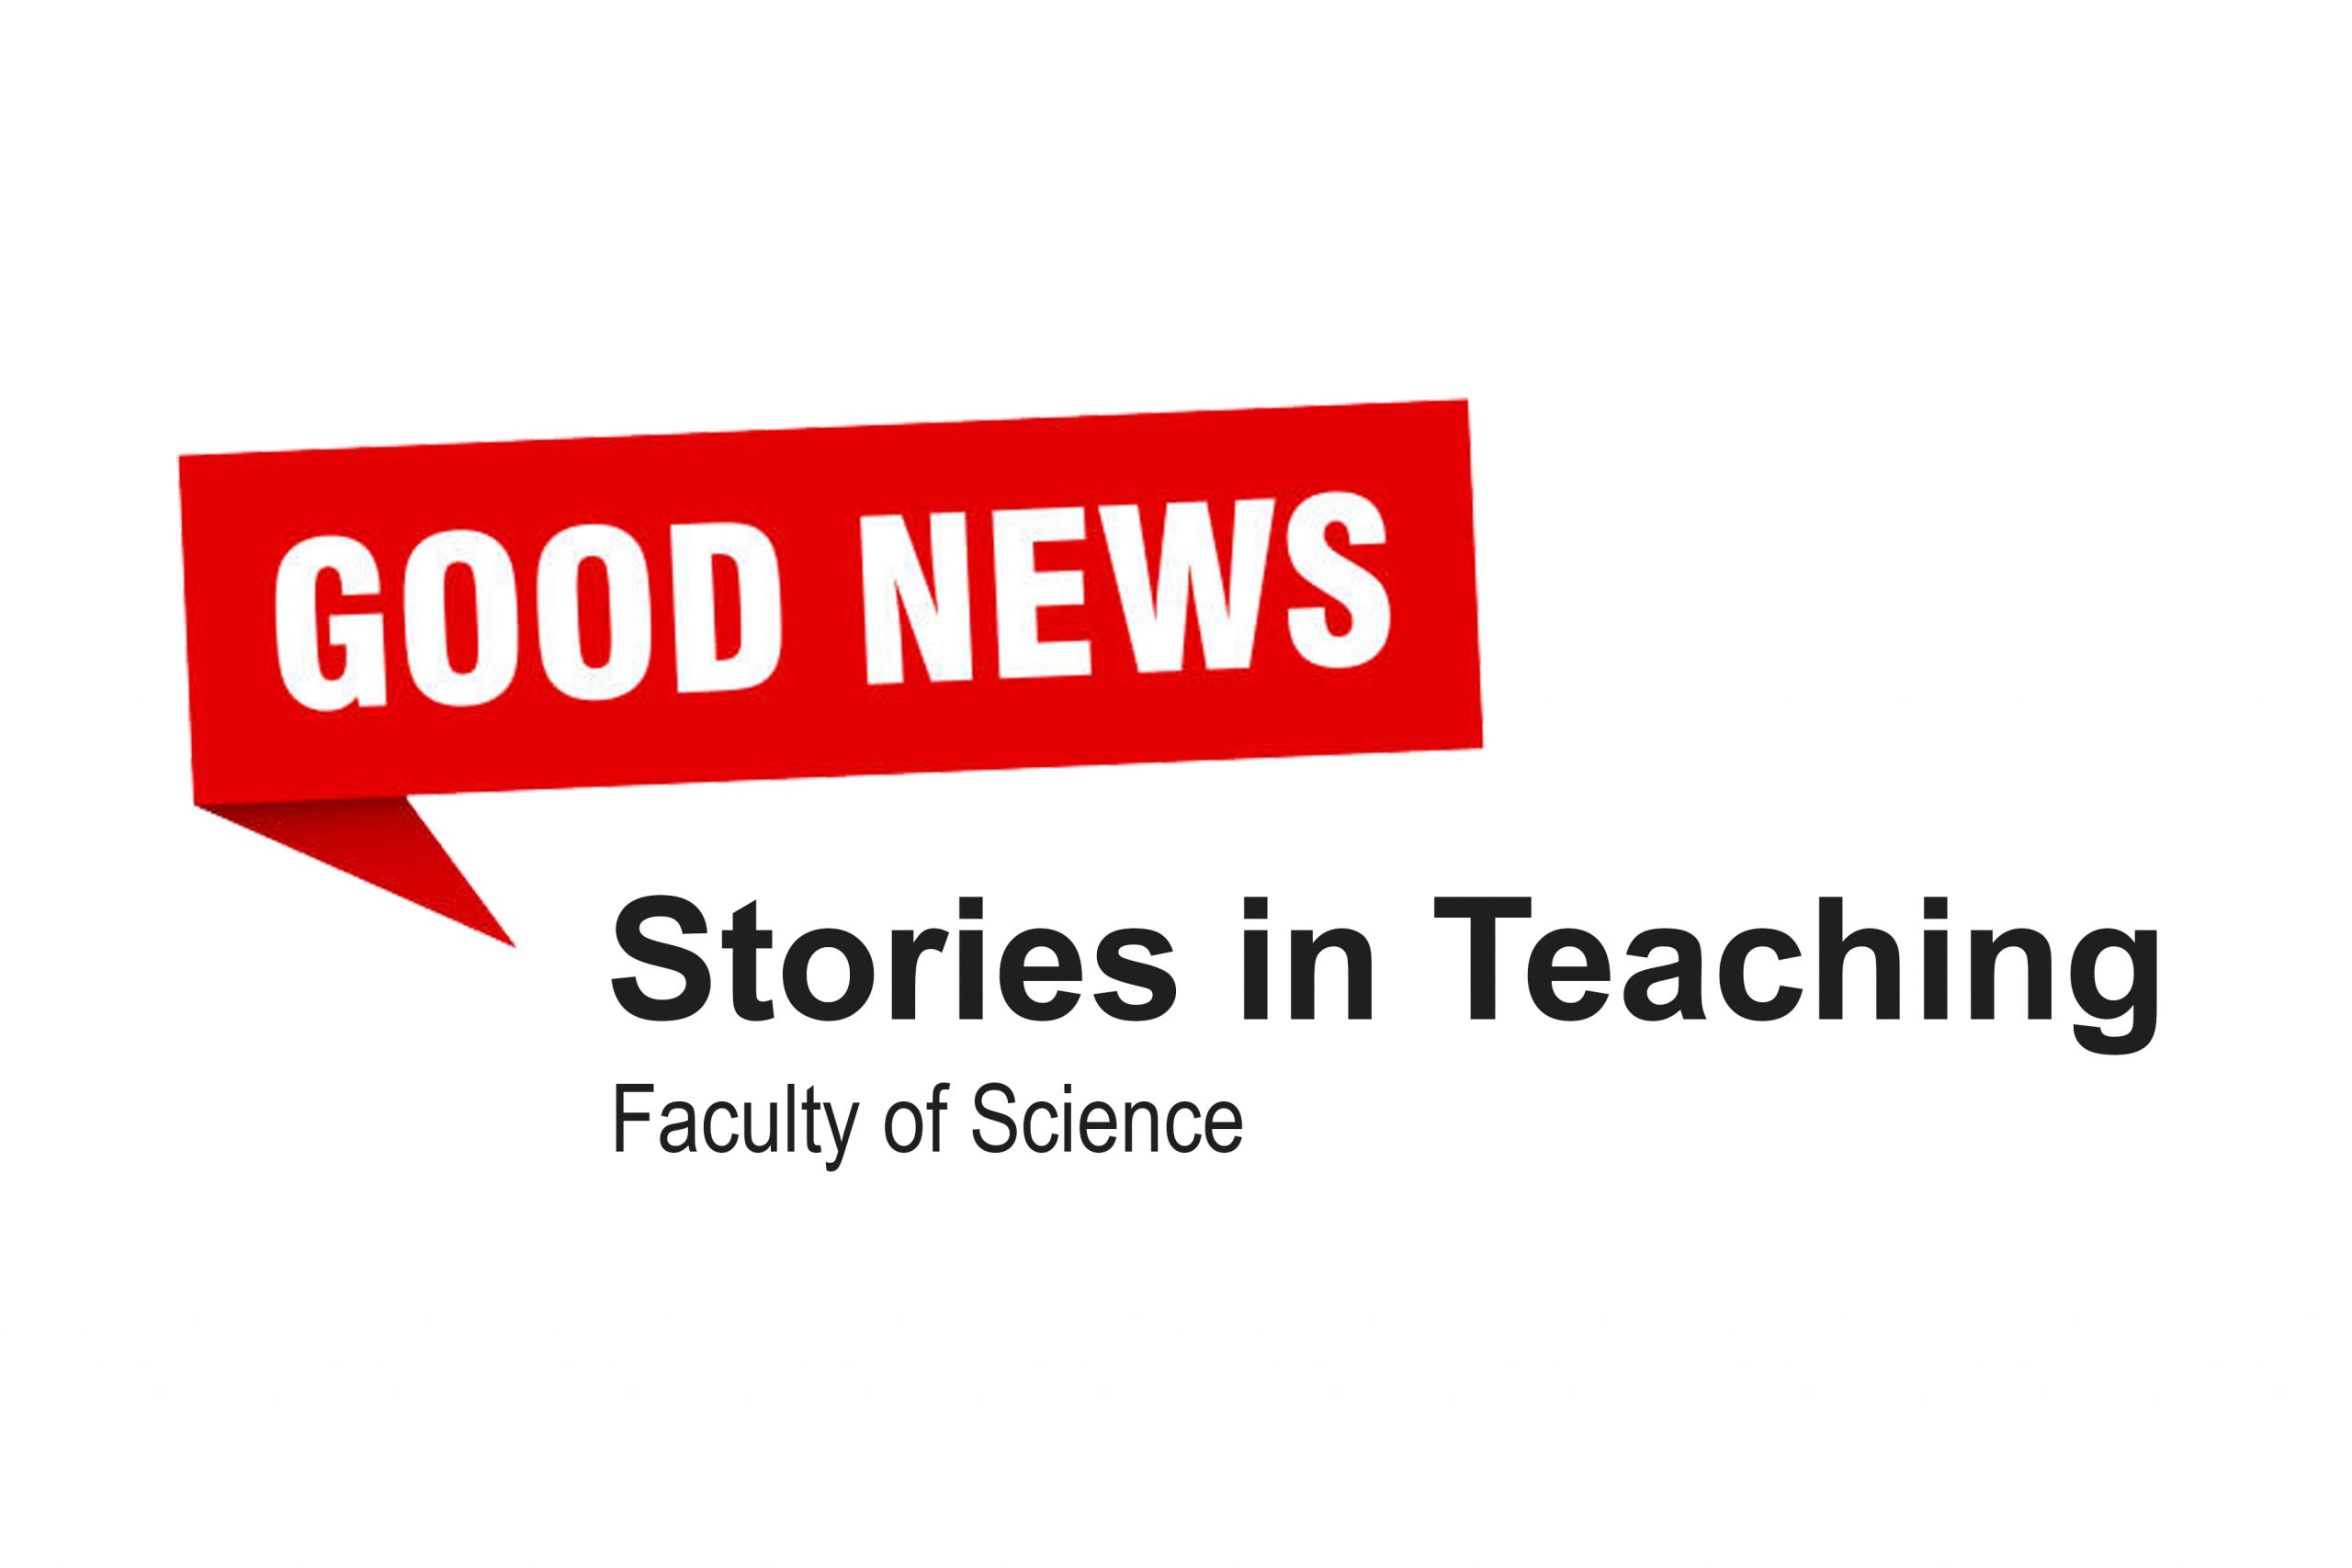 Cover image for Good News Stories in Online Teaching in the Faculty of Science